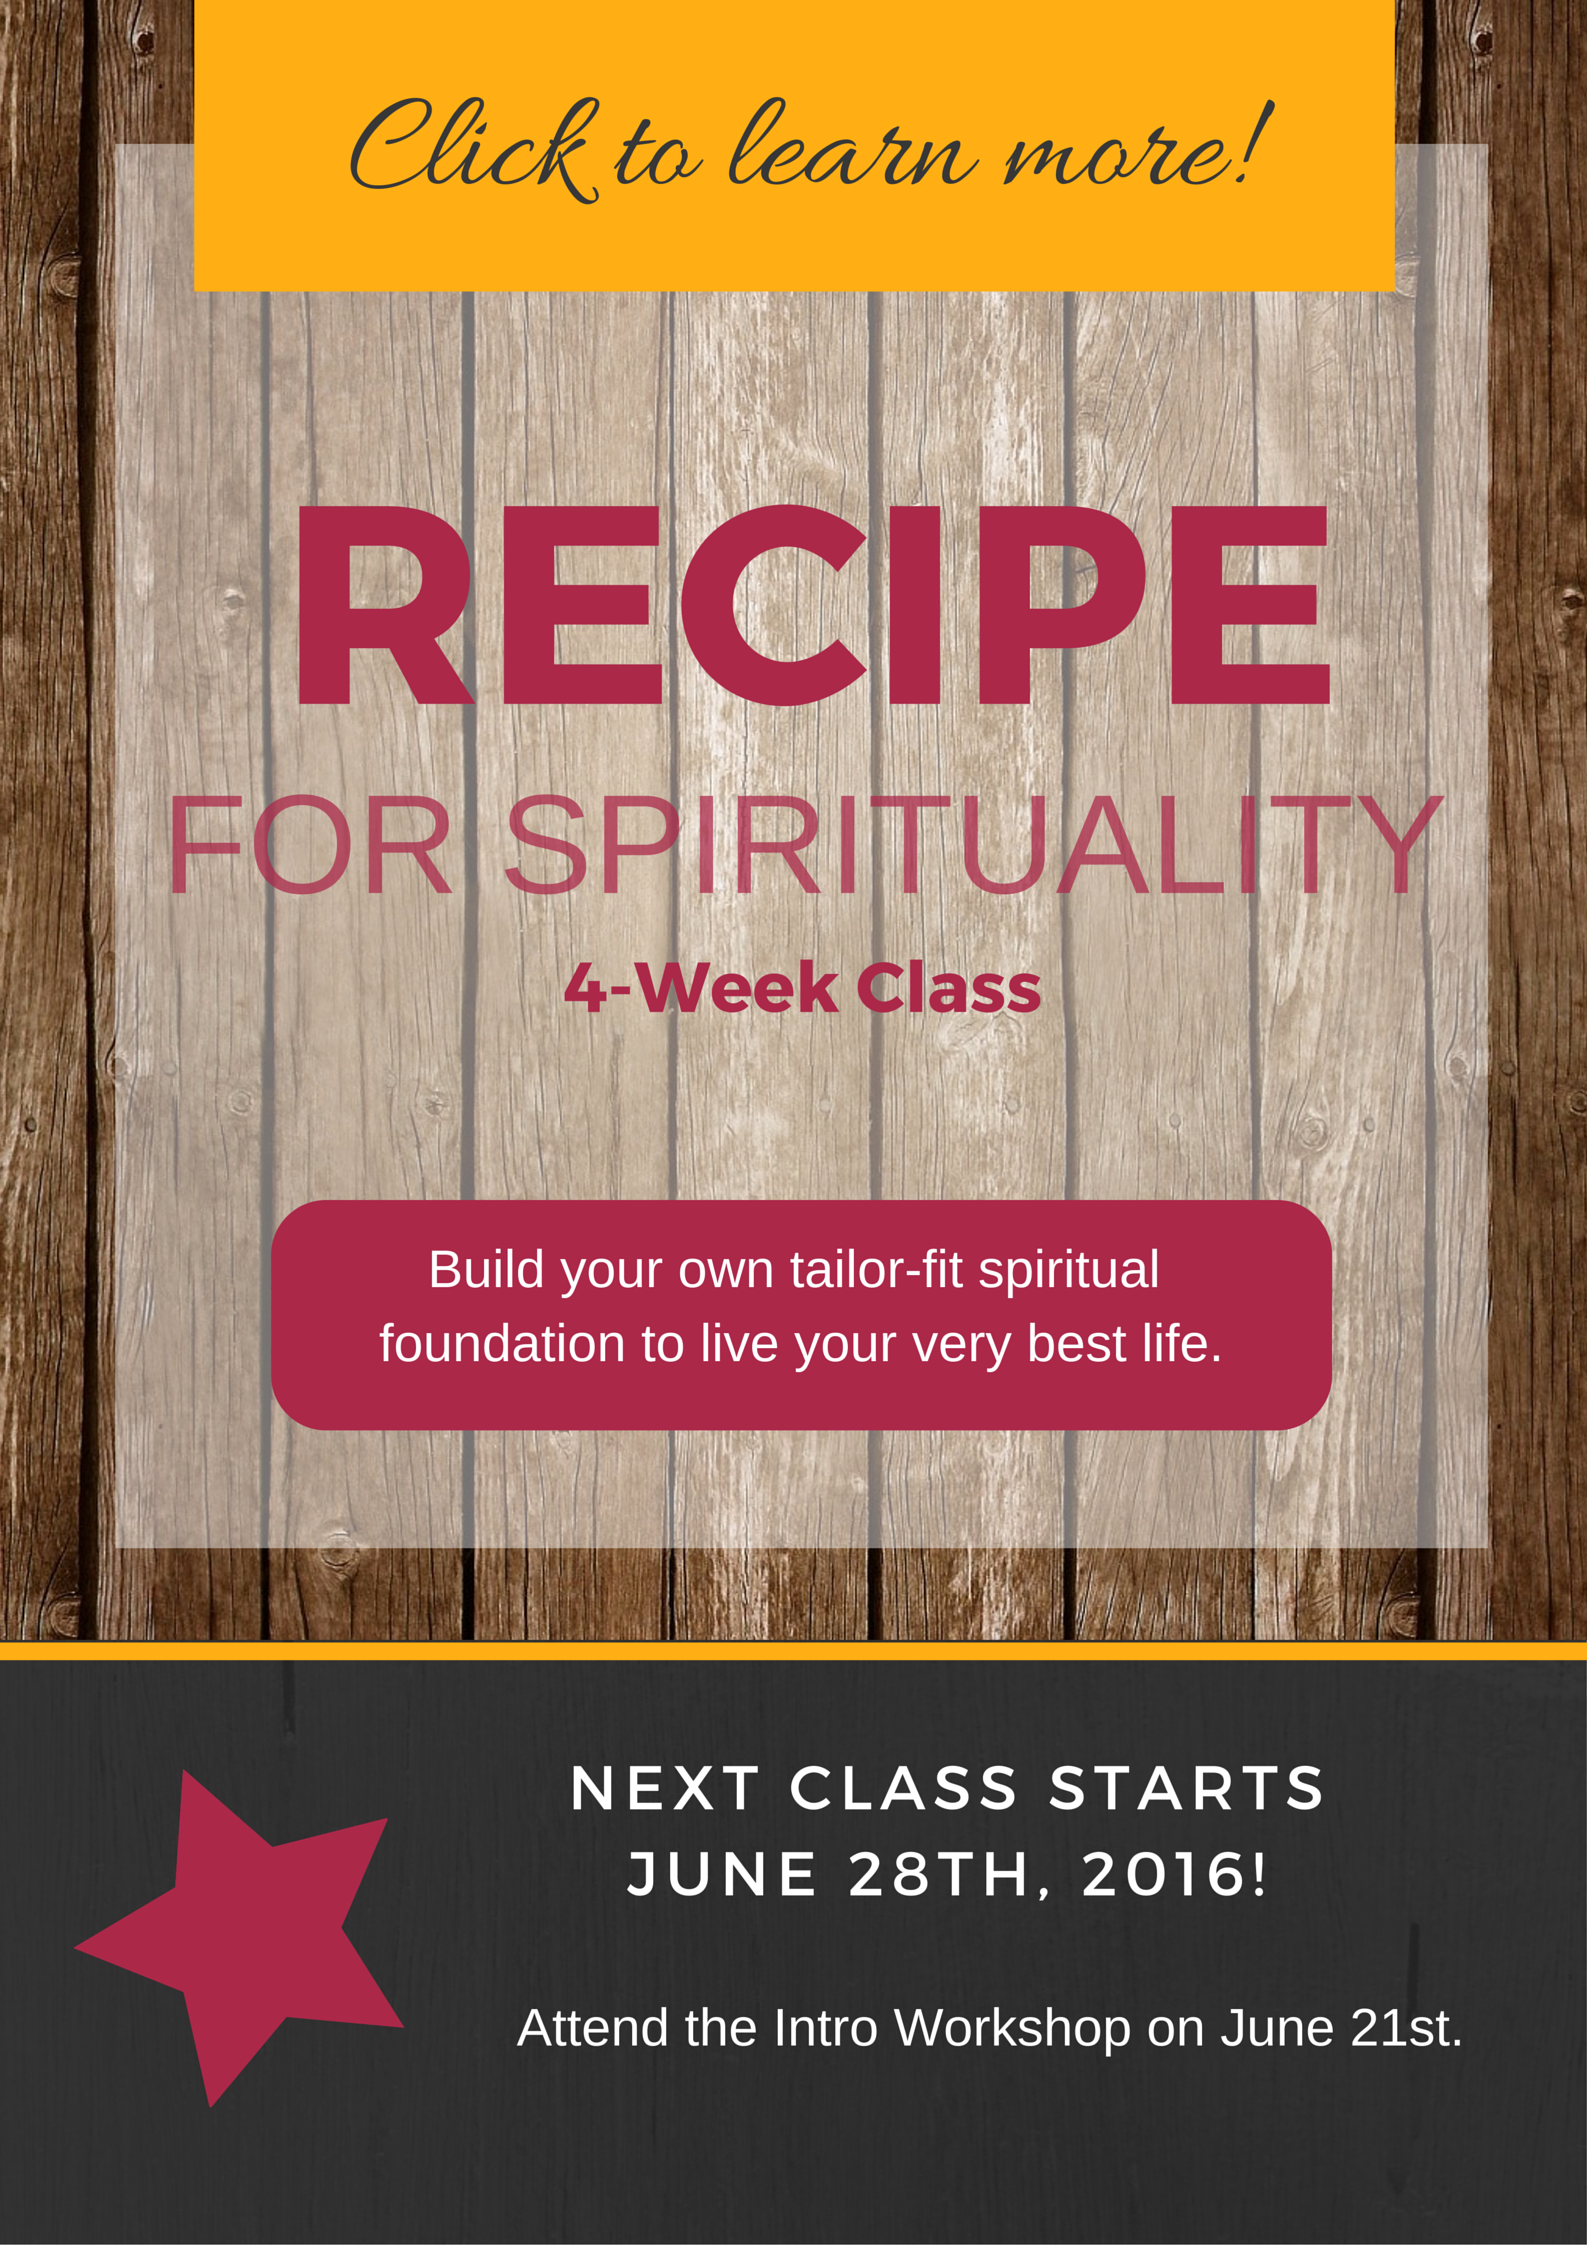 CLICK HERE TO LEARN MORE ABOUT THE CLASS!